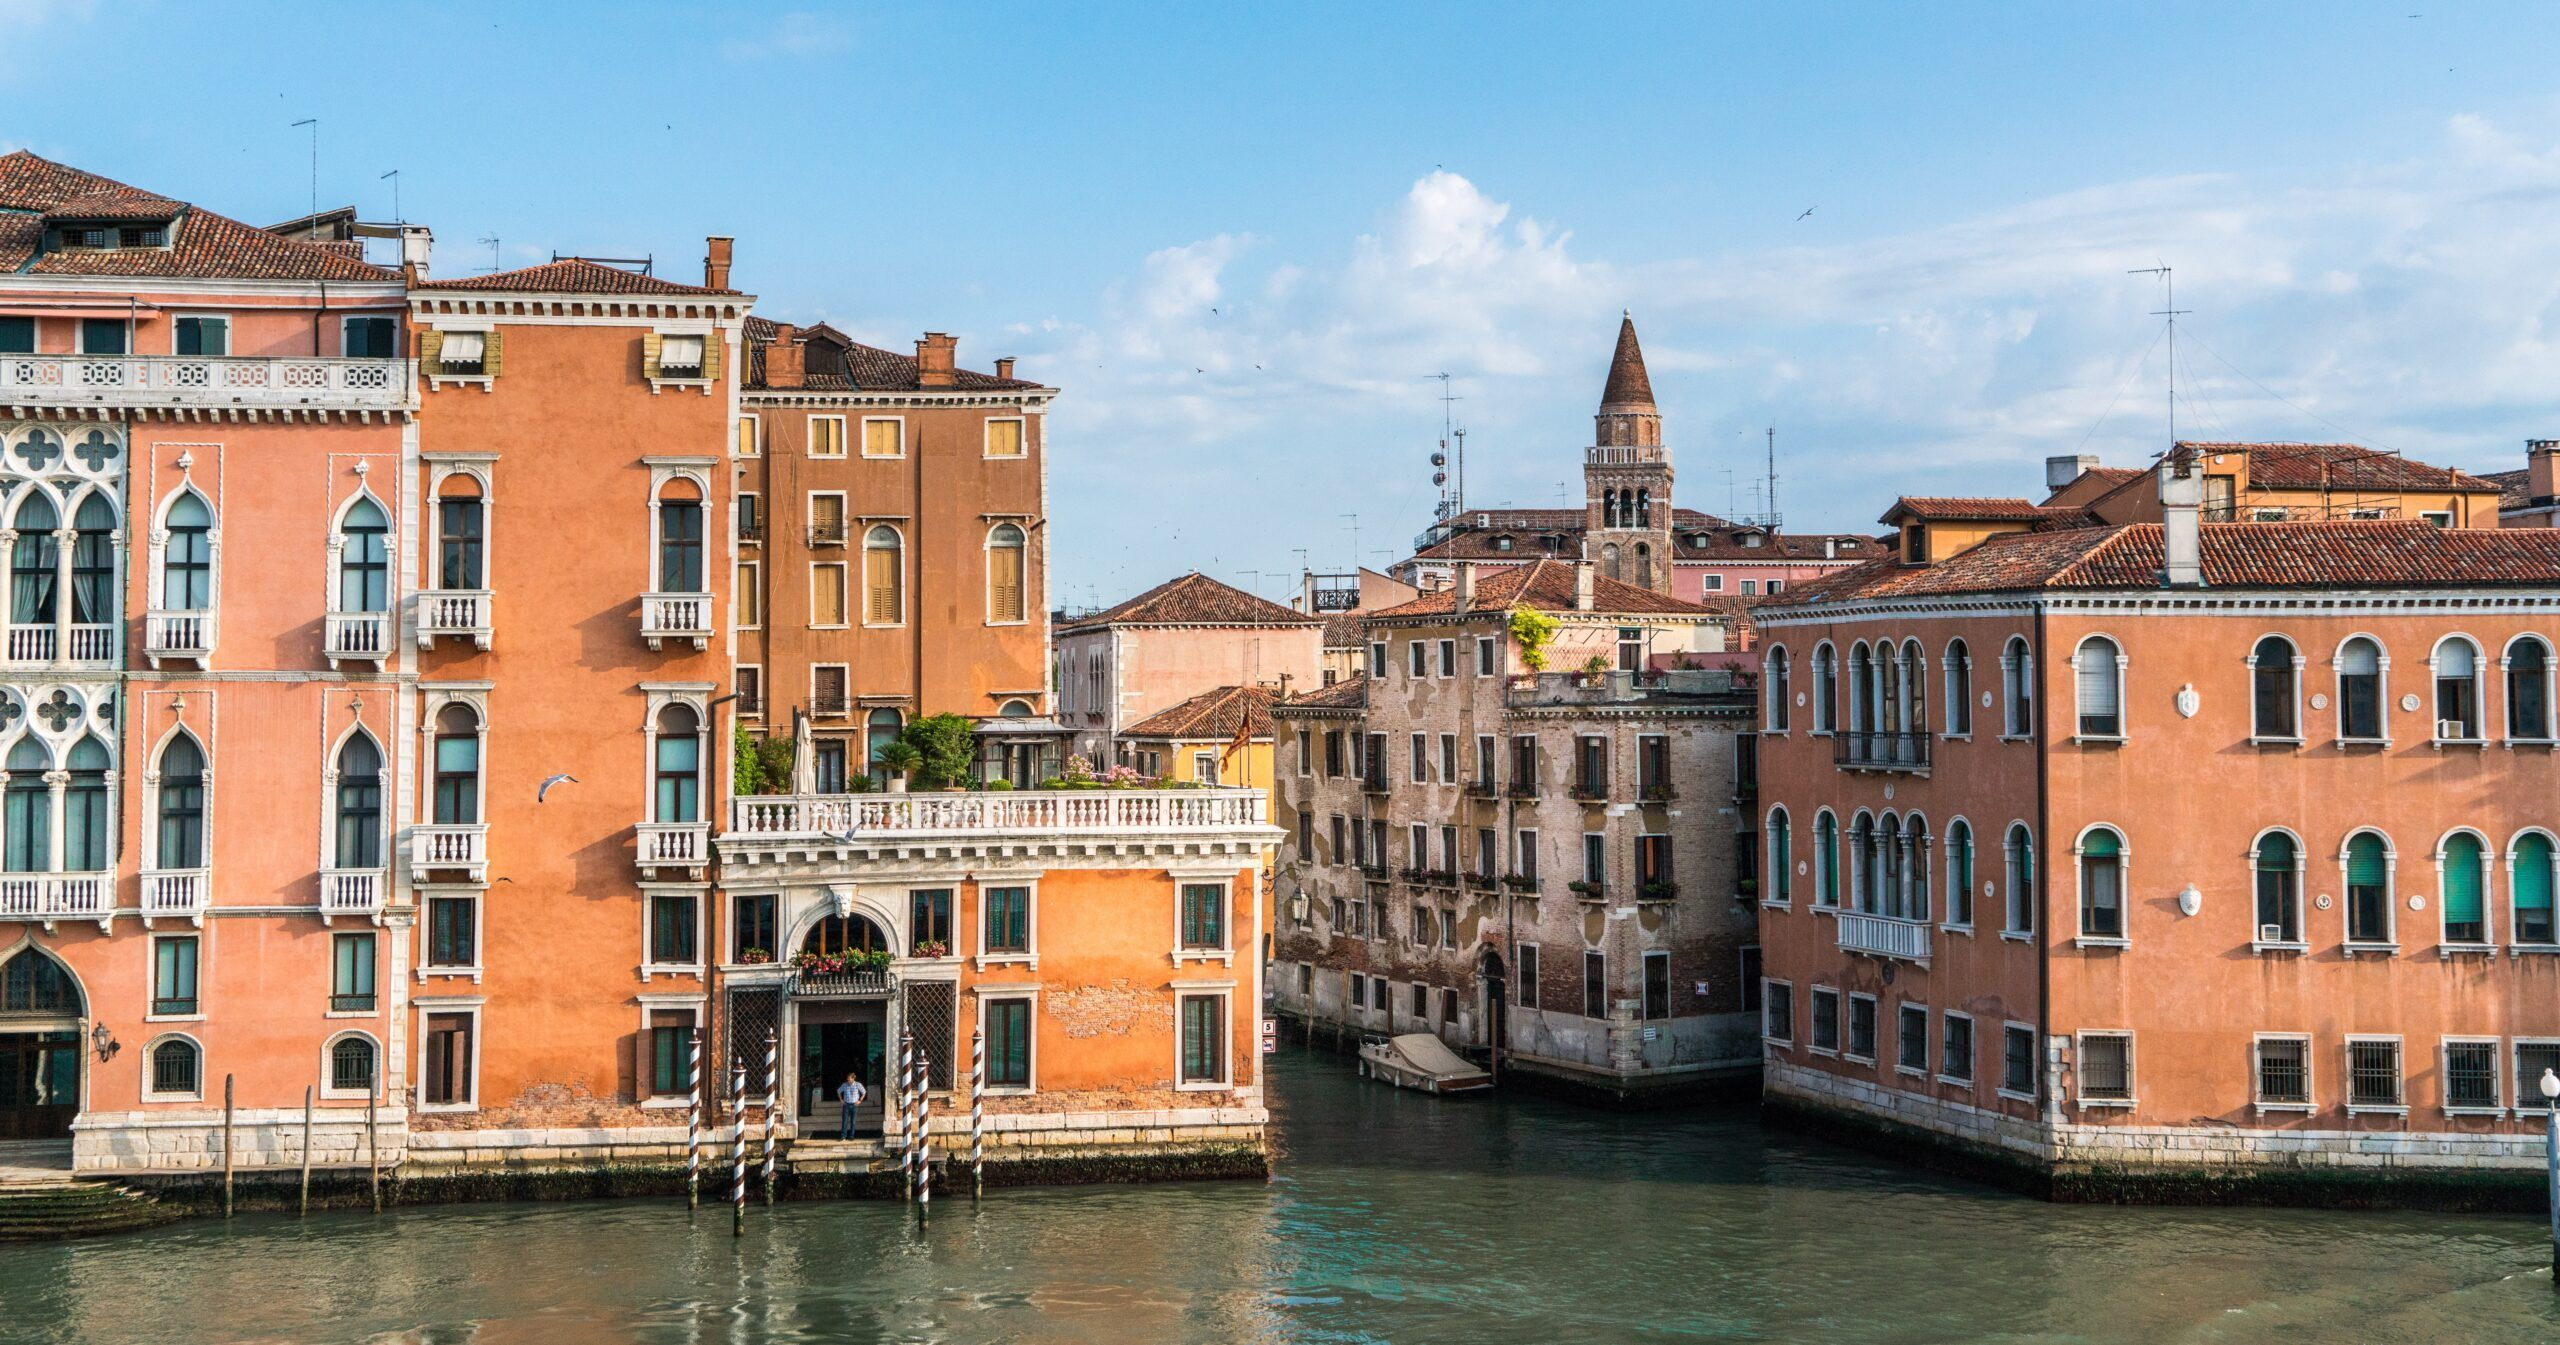 Venice, one of the most beautiful cities in the world.